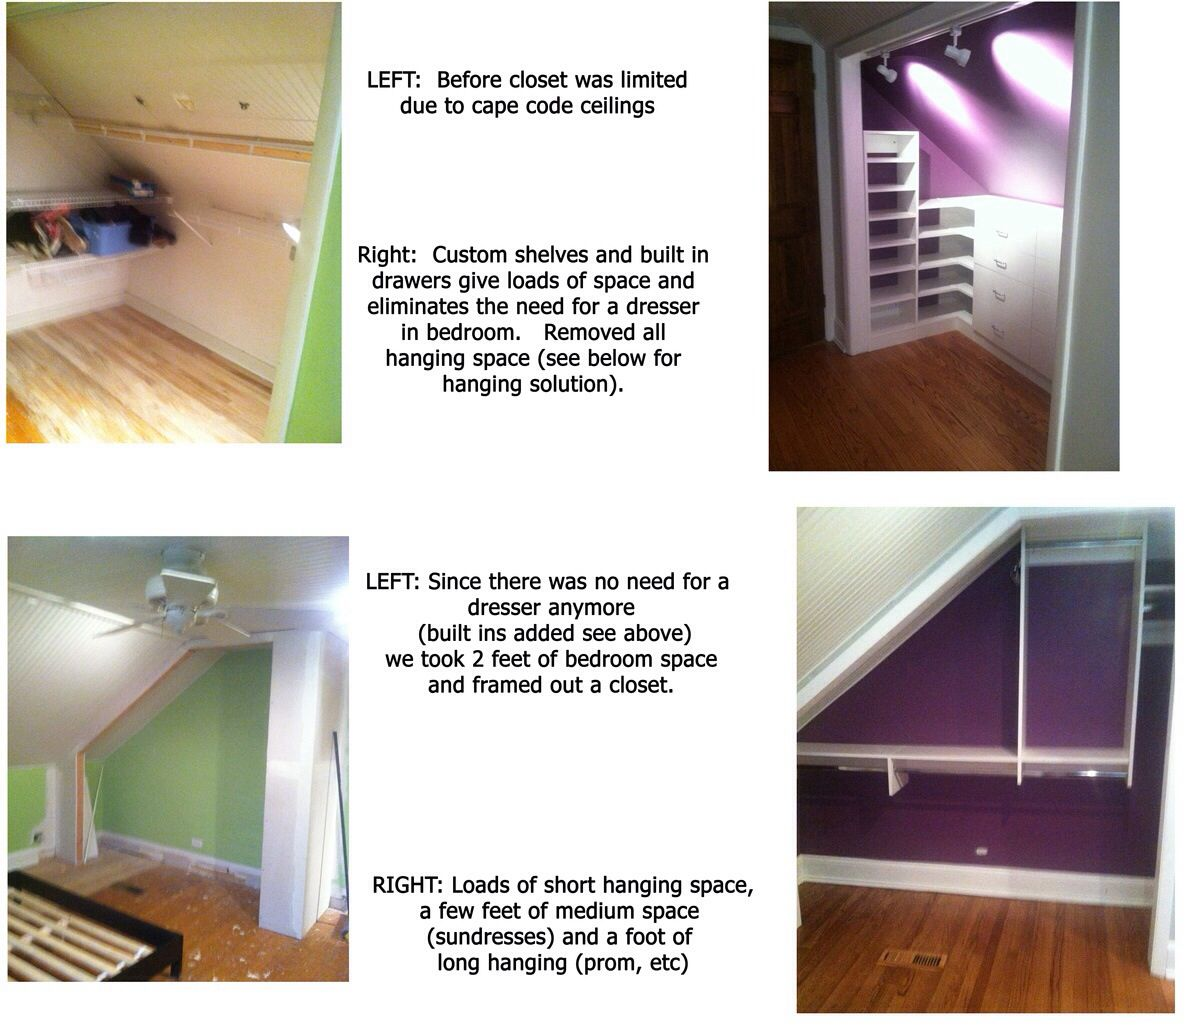 Lovely Cape Cod Closet Ideas Part - 12: Closet Renovations - Tricky Cape Cod With Loads Of Closet Space!